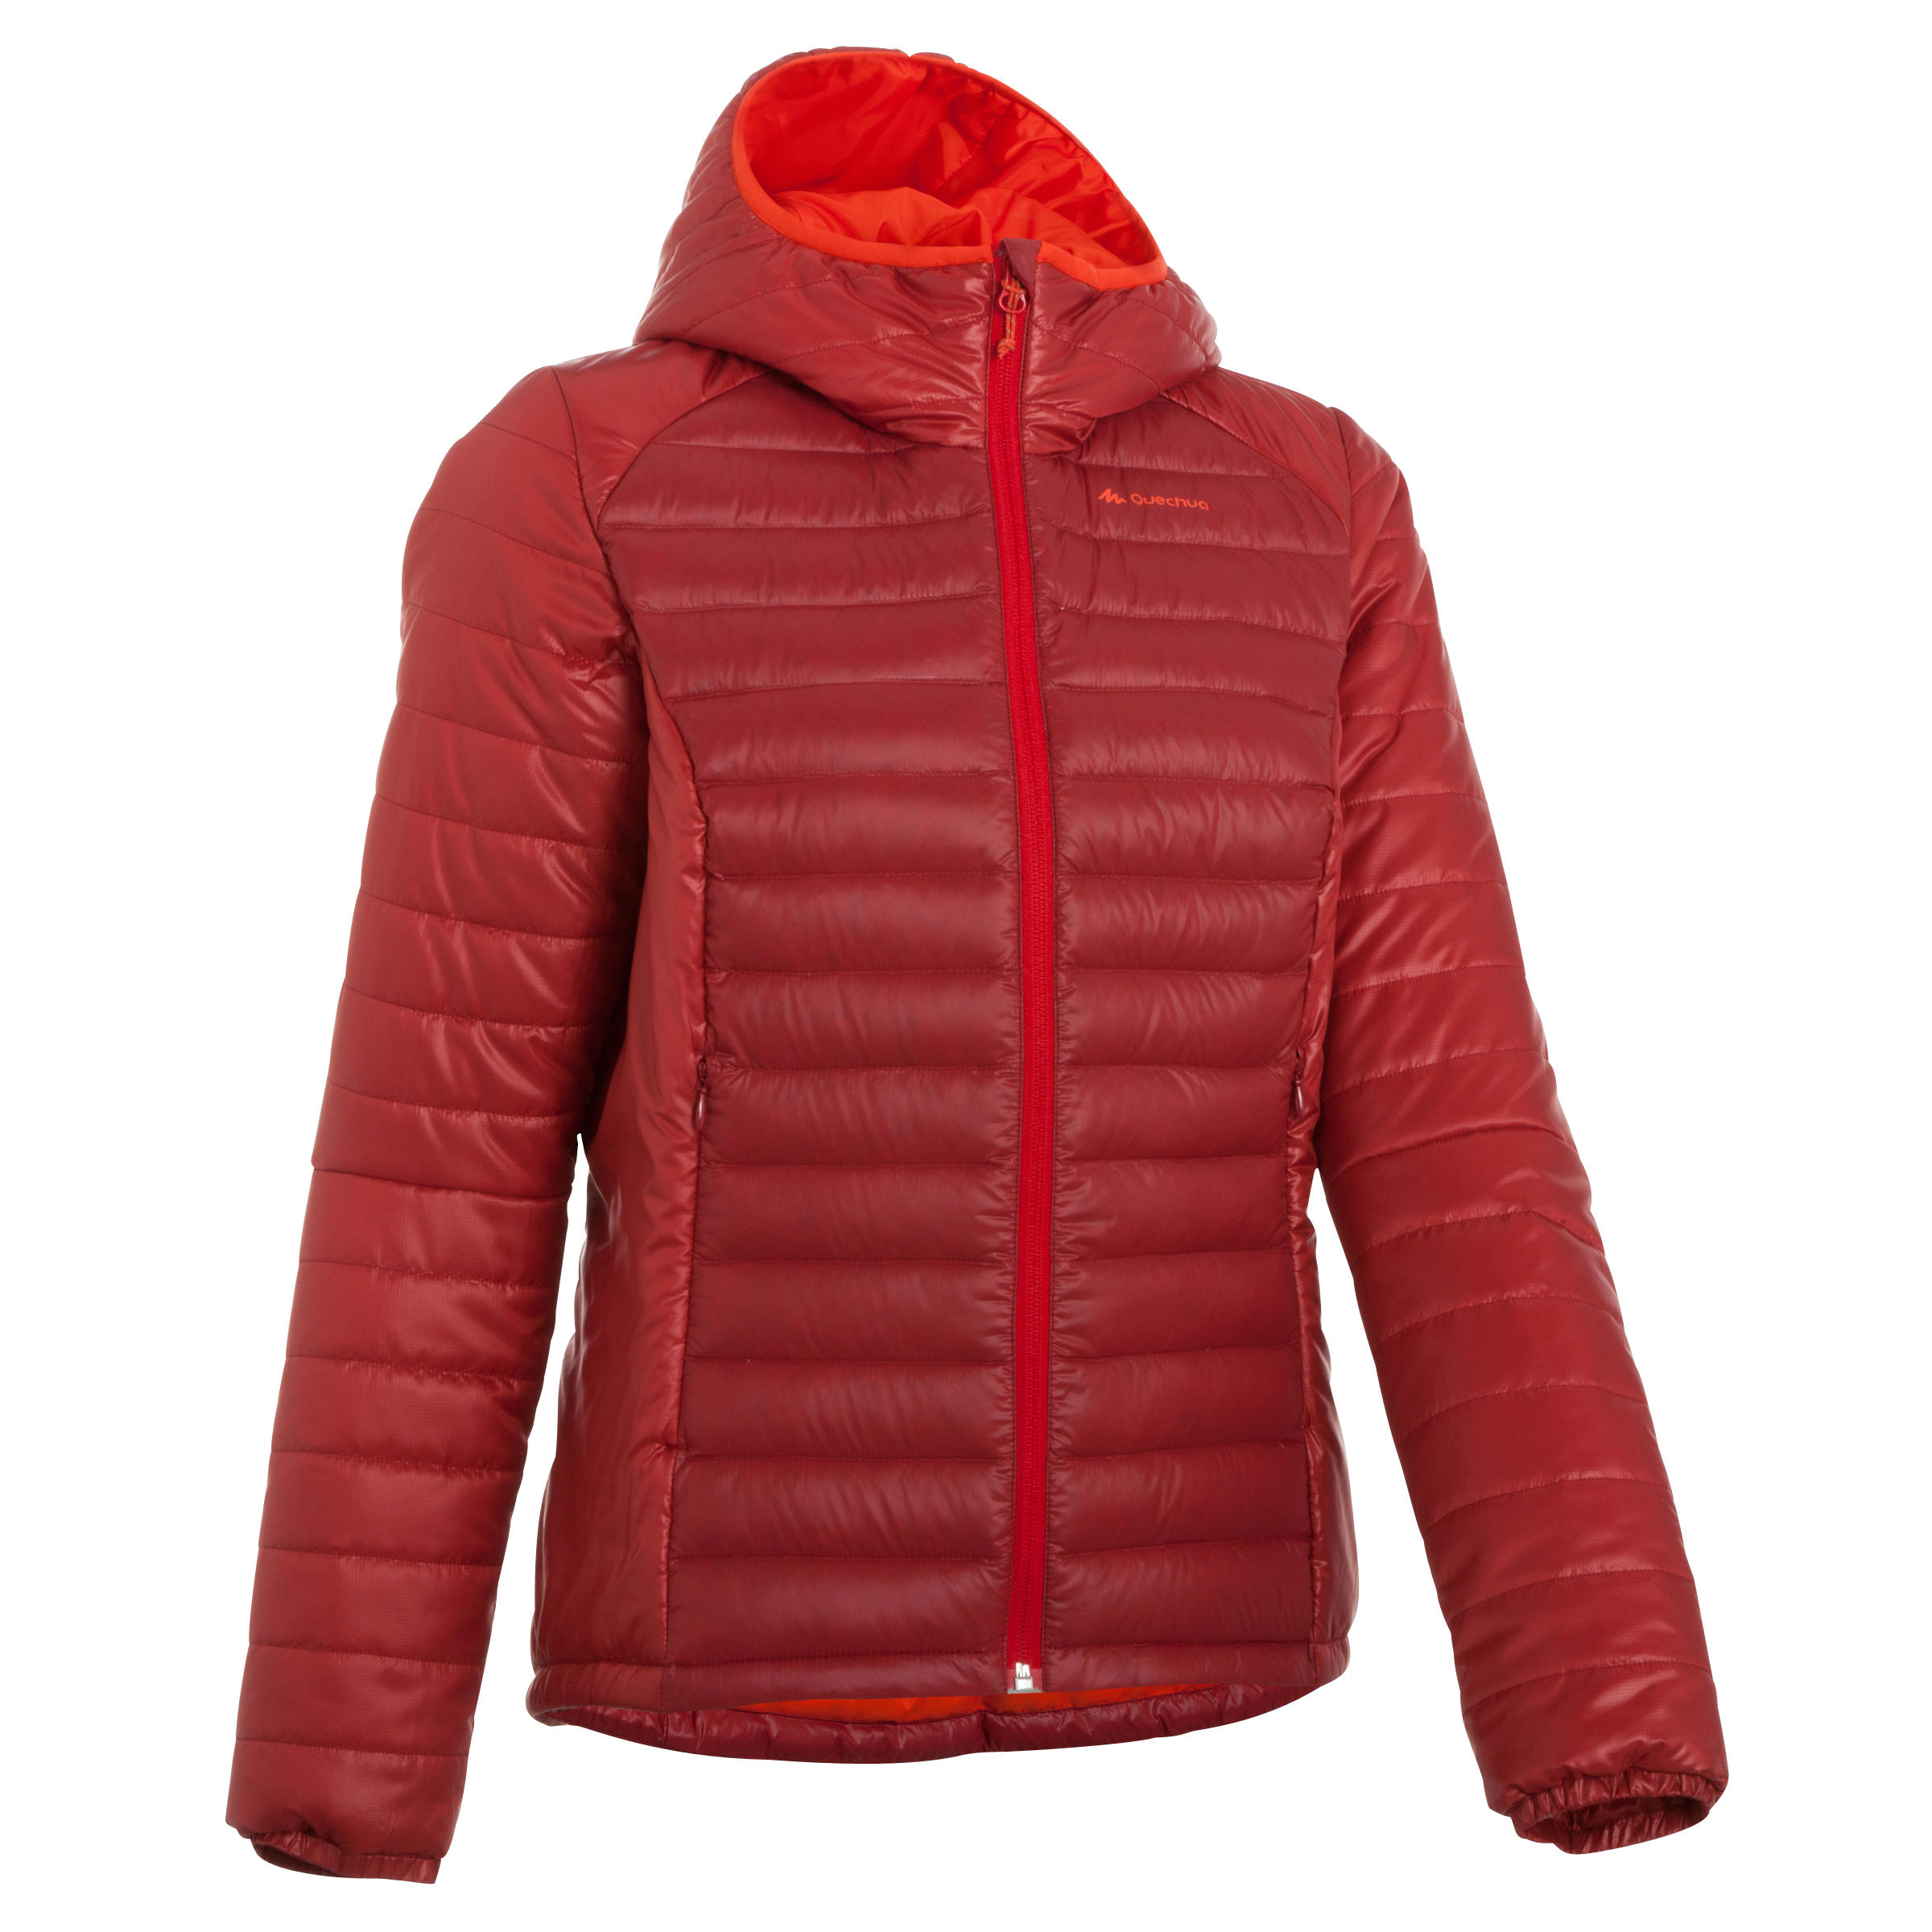 Light Randonnée X Femme Rouge Doudoune l1uK3TFJc